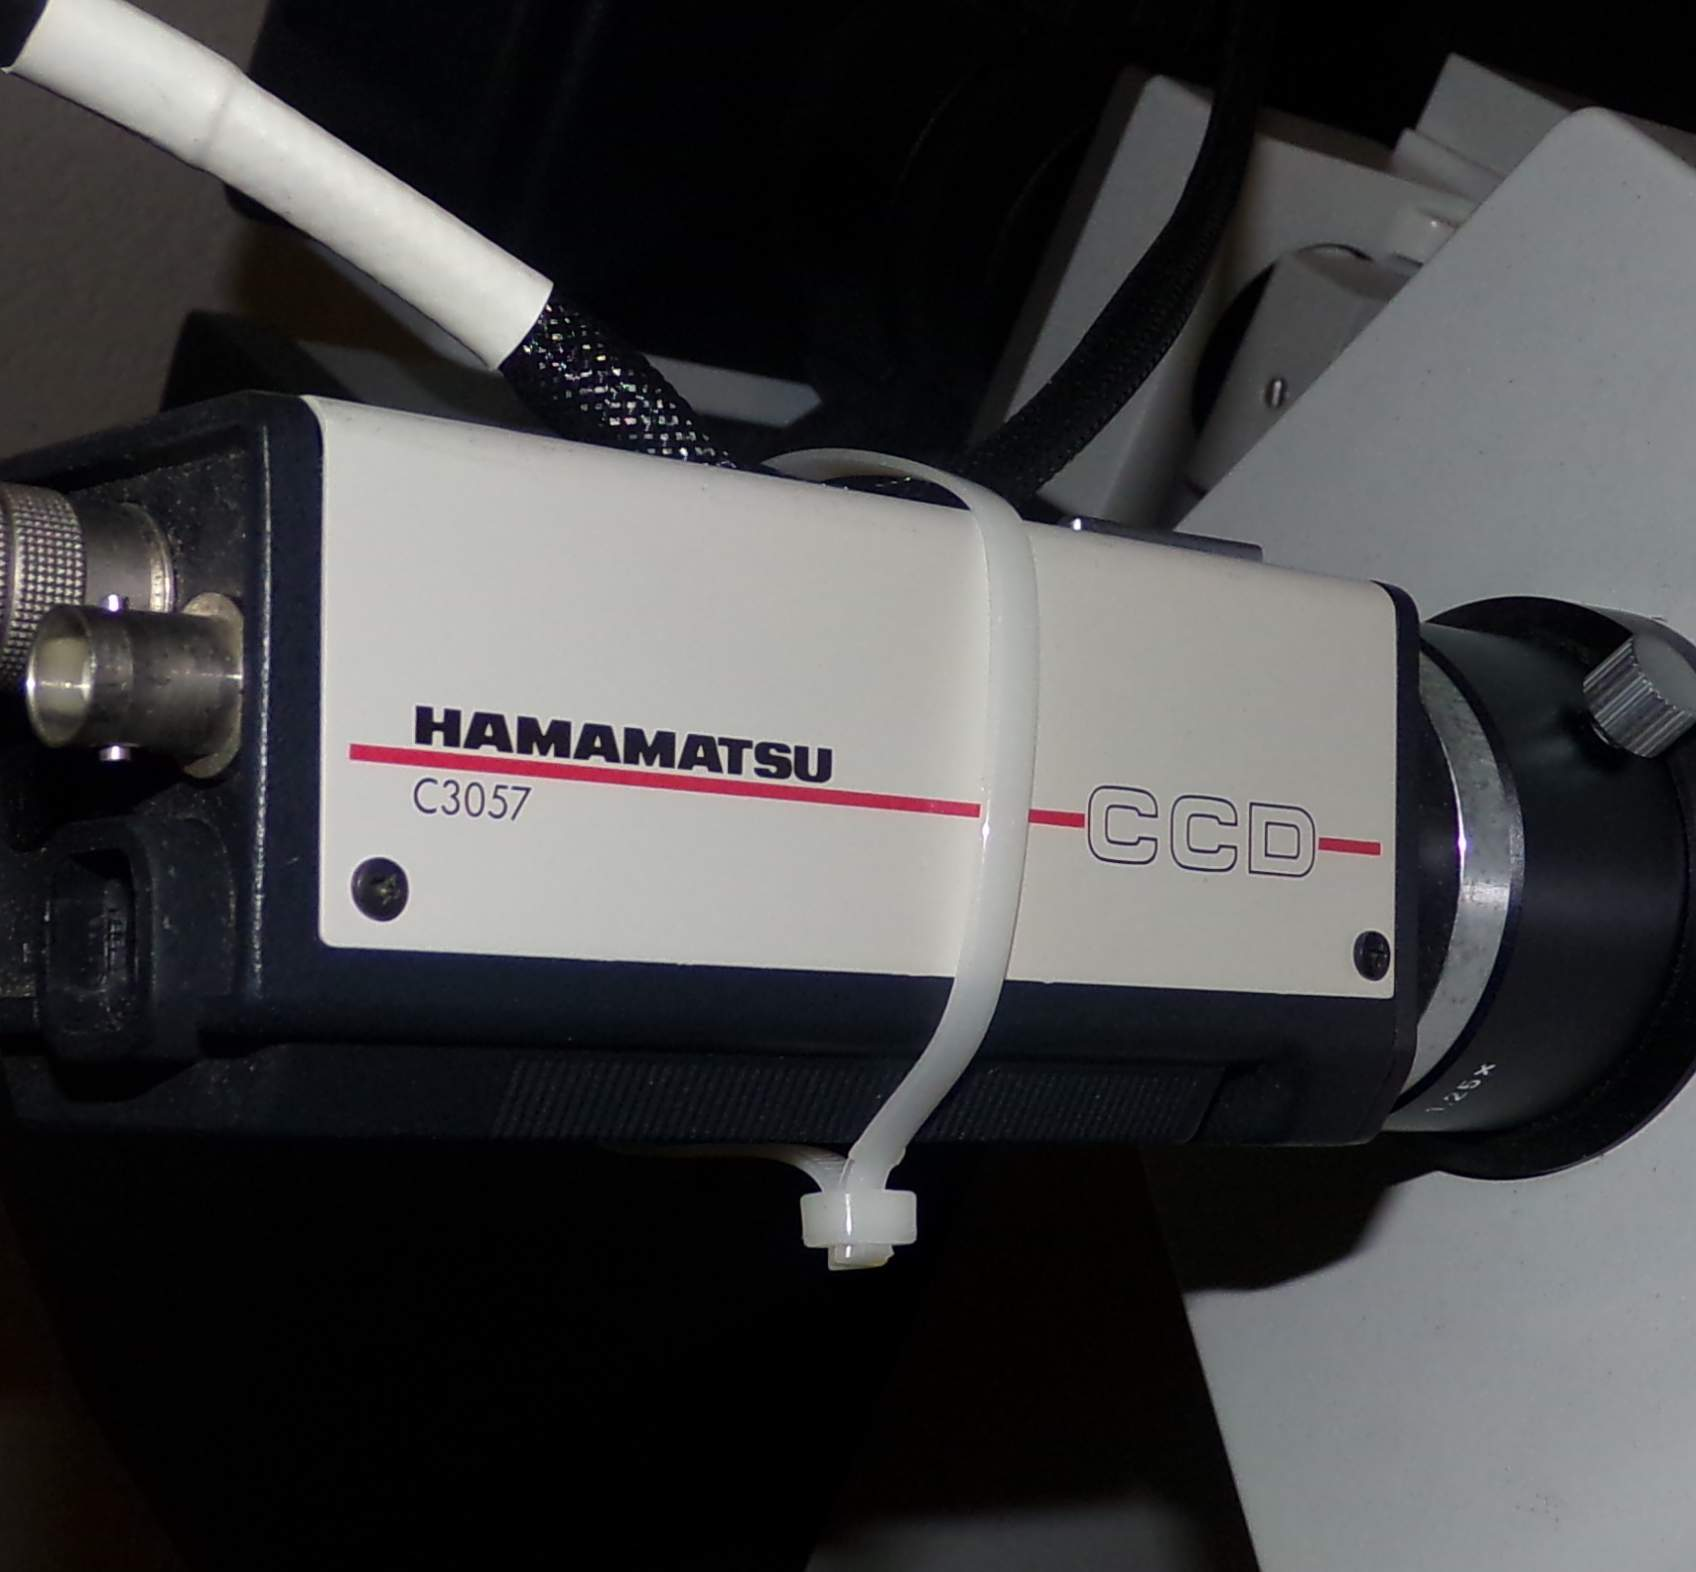 Ernst Leitz KSI Sam 2000 GmbH Ultrahigh Frequency Scanning